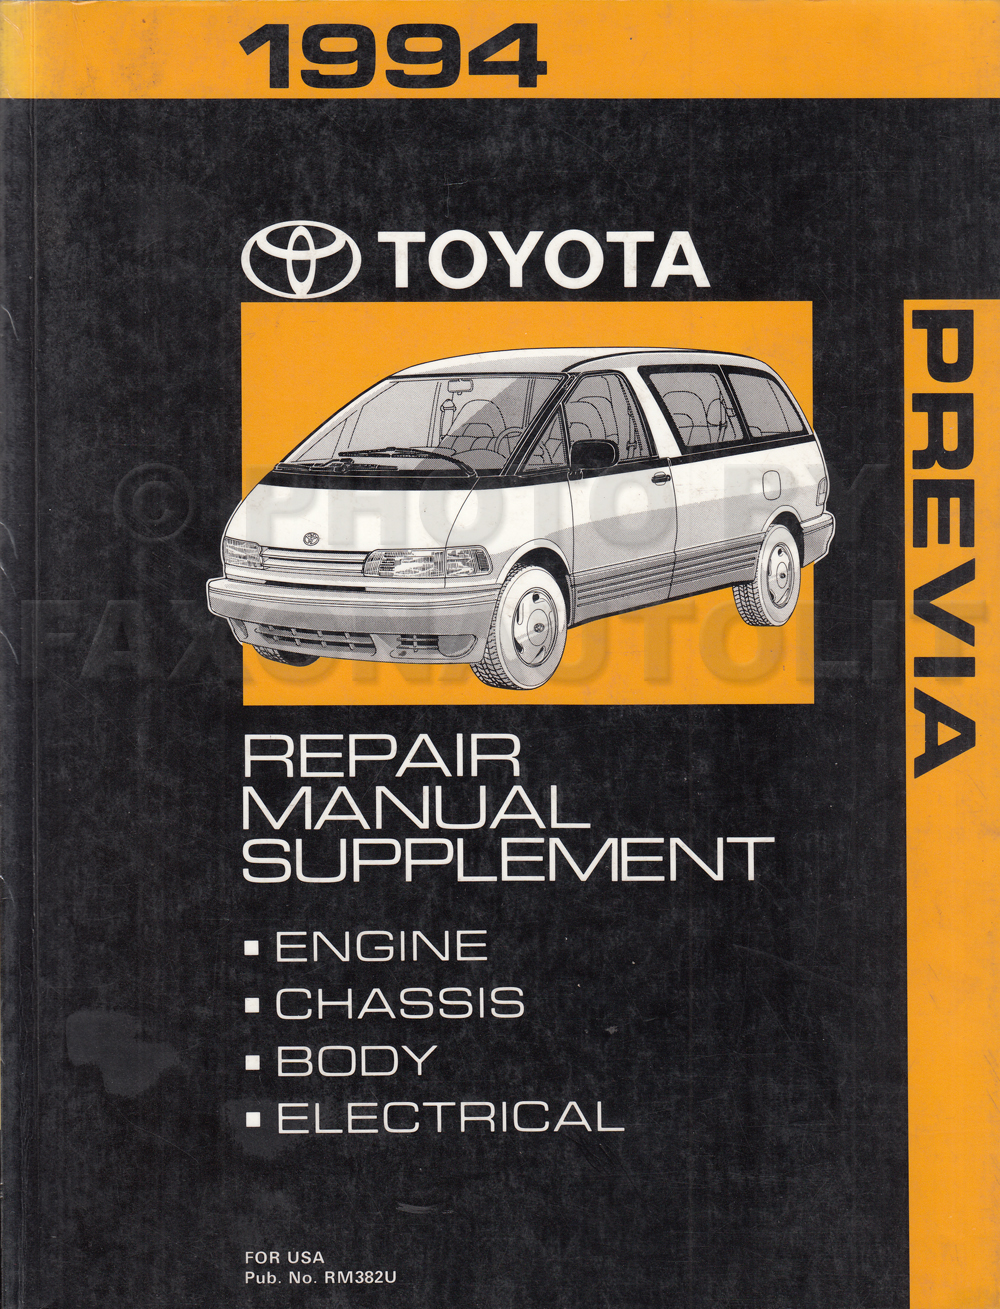 1994 Toyota 4runner Wiring Diagram Manual Original Library 1996 Previa Van Repair